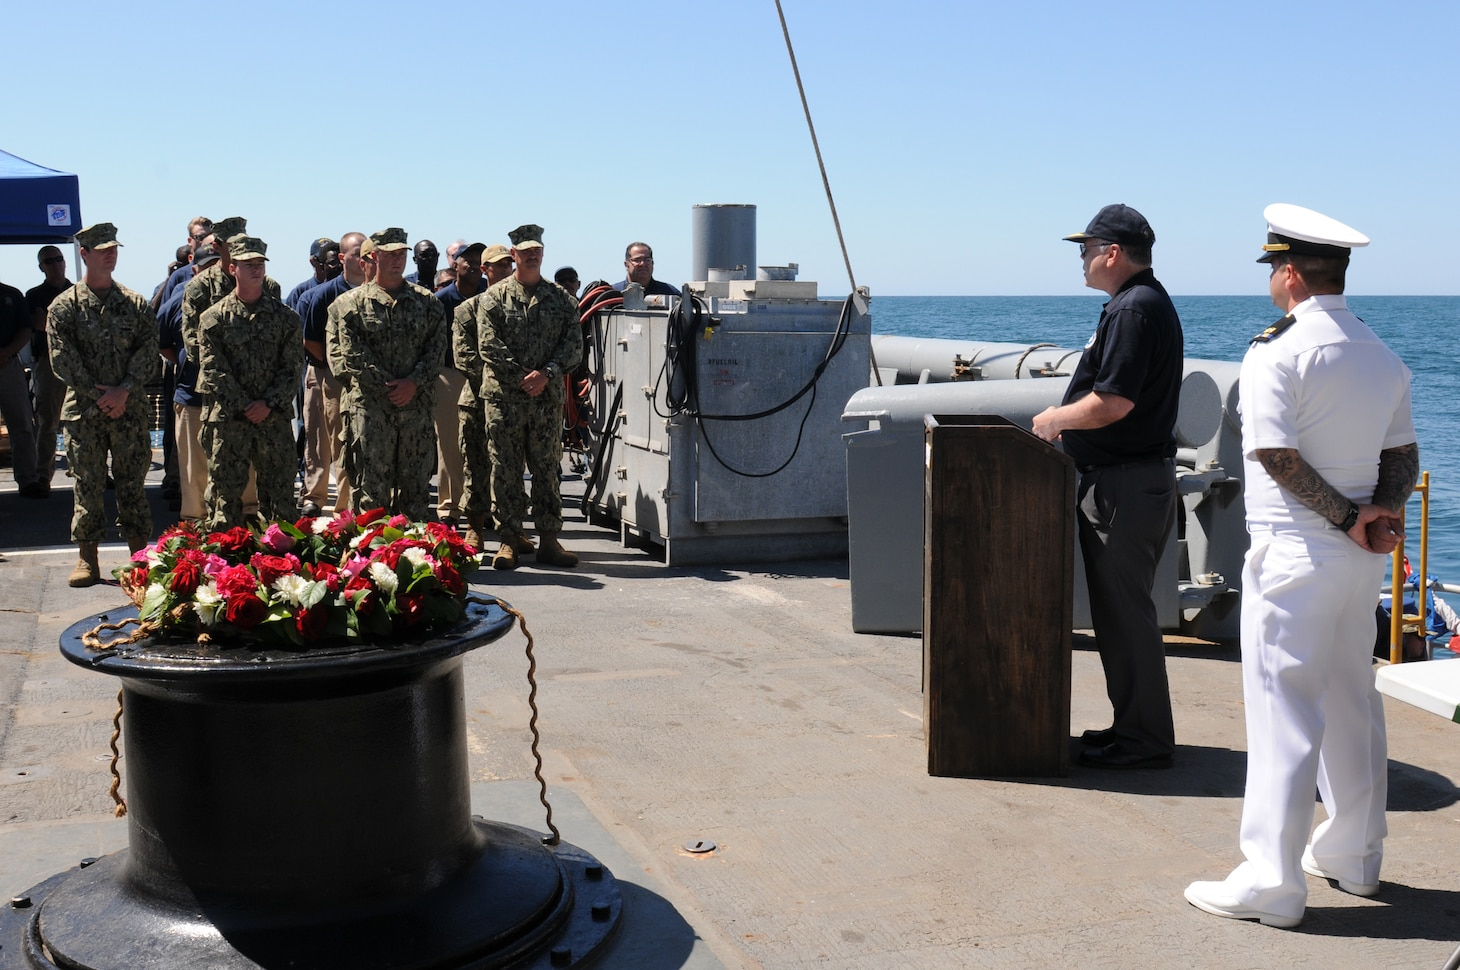 Retired Rear Admiral Samuel Cox, Director, Naval History and Heritage Command, speaks to Sailors aboard the USNS Grasp (T-ARS-51) during a wreath-laying ceremony to commemorate the 100th anniversary of the sinking of the USS San Diego (ACR 6). Believed to be caused by a German mine or torpedo, the armored cruiser sank in 28 minutes with the loss of six lives. The ceremony was organized by the Naval History and Heritage Command, which is responsible for the preservation, analysis, and dissemination of U.S. Naval history and heritage.